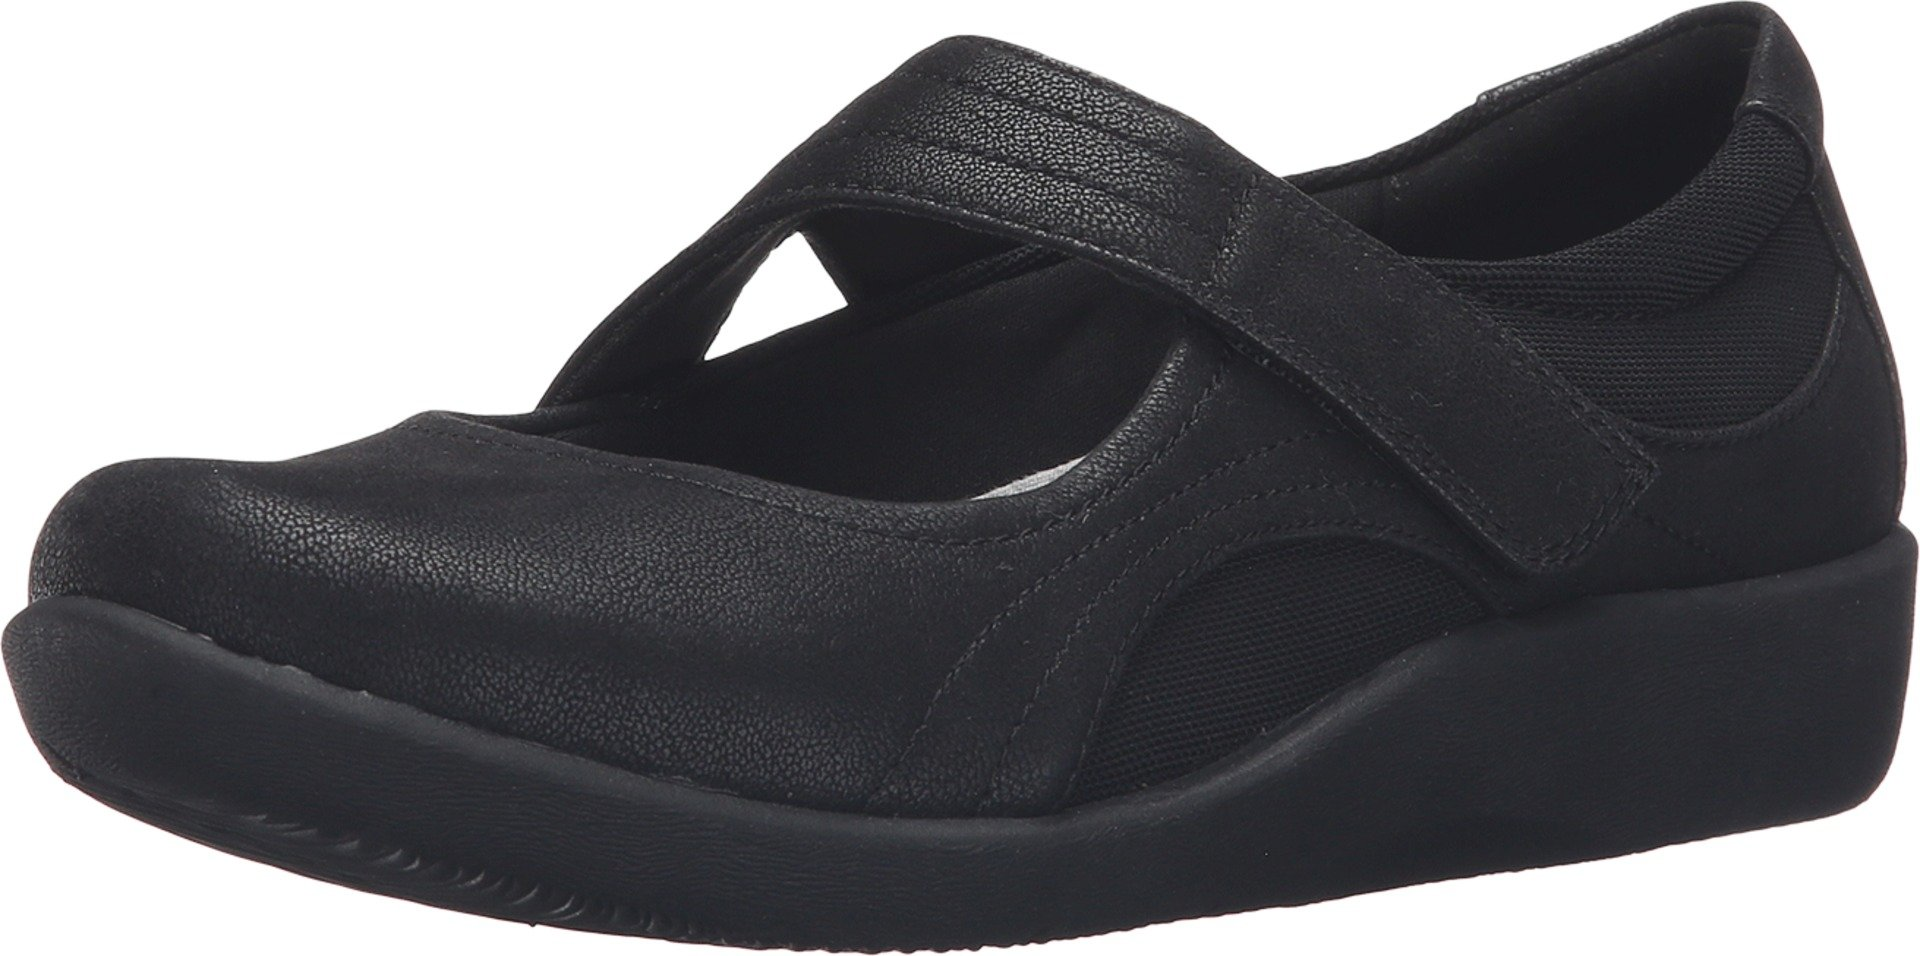 Clarks Women's CloudSteppers Sillian Bella Mary Jane Flat, Black Synthetic, 8 M US